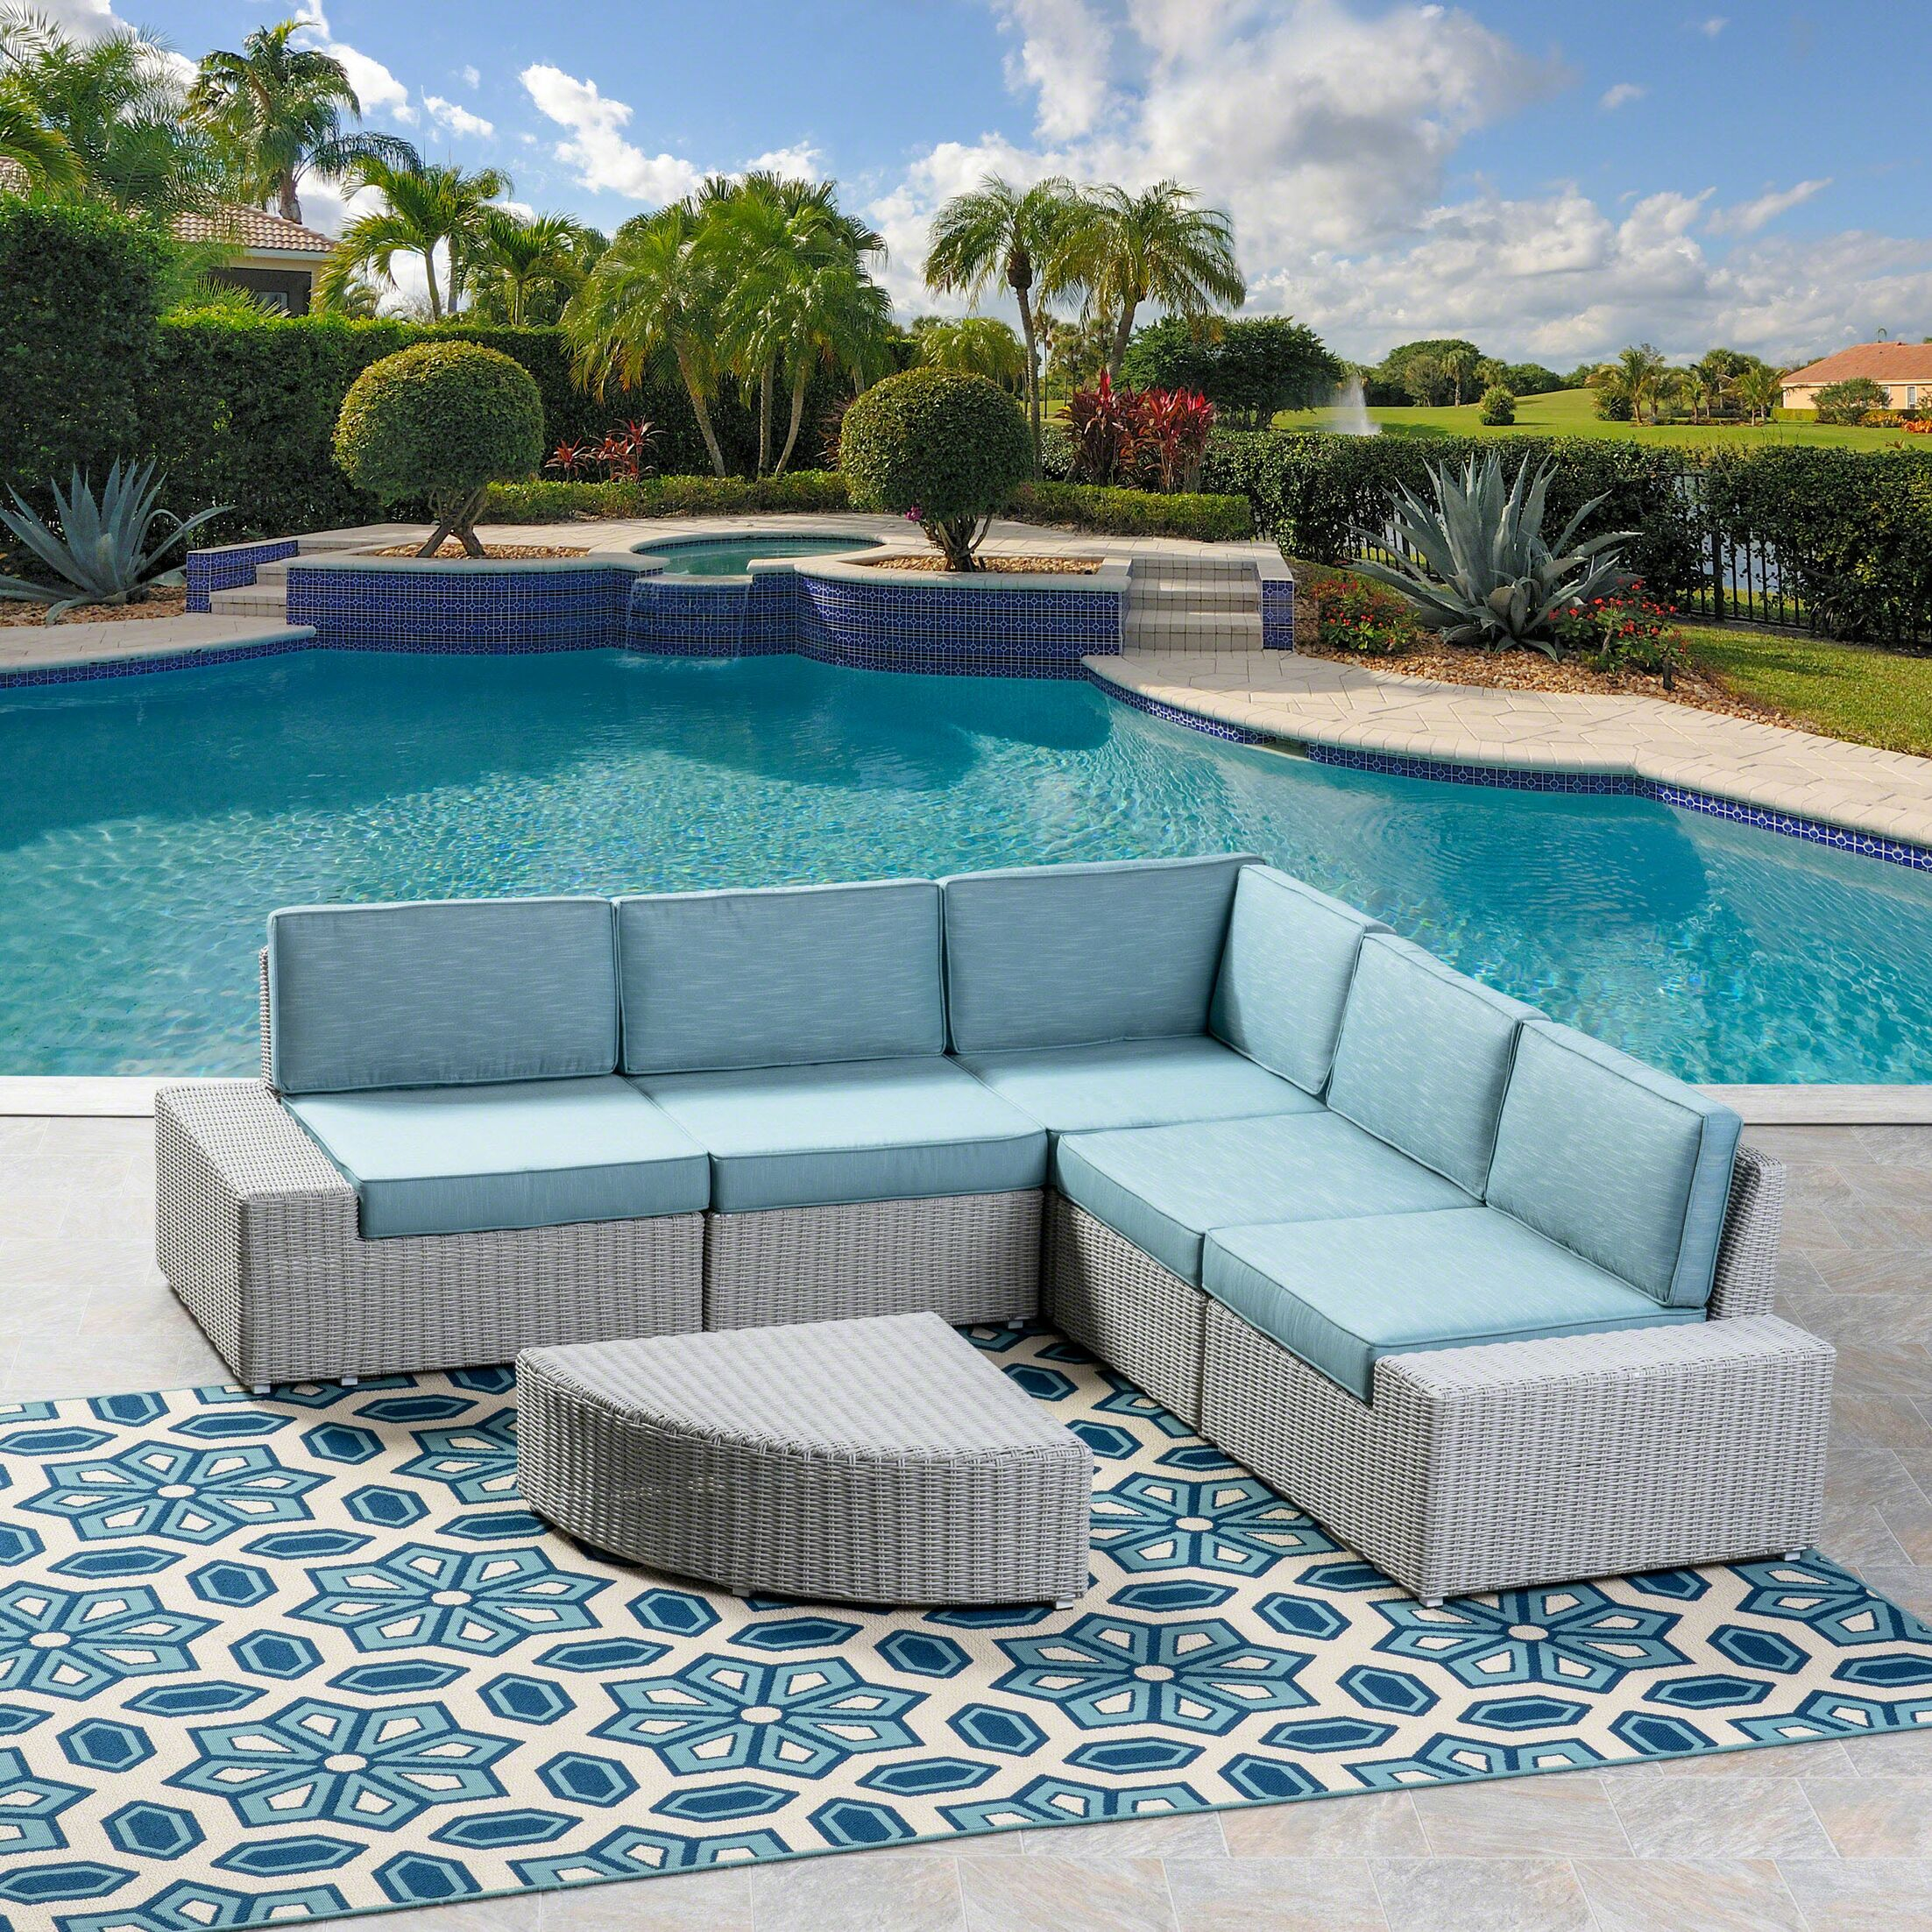 Kerr 5 Piece Rattan Sectional Set with Cushions Cushion Color: Teal